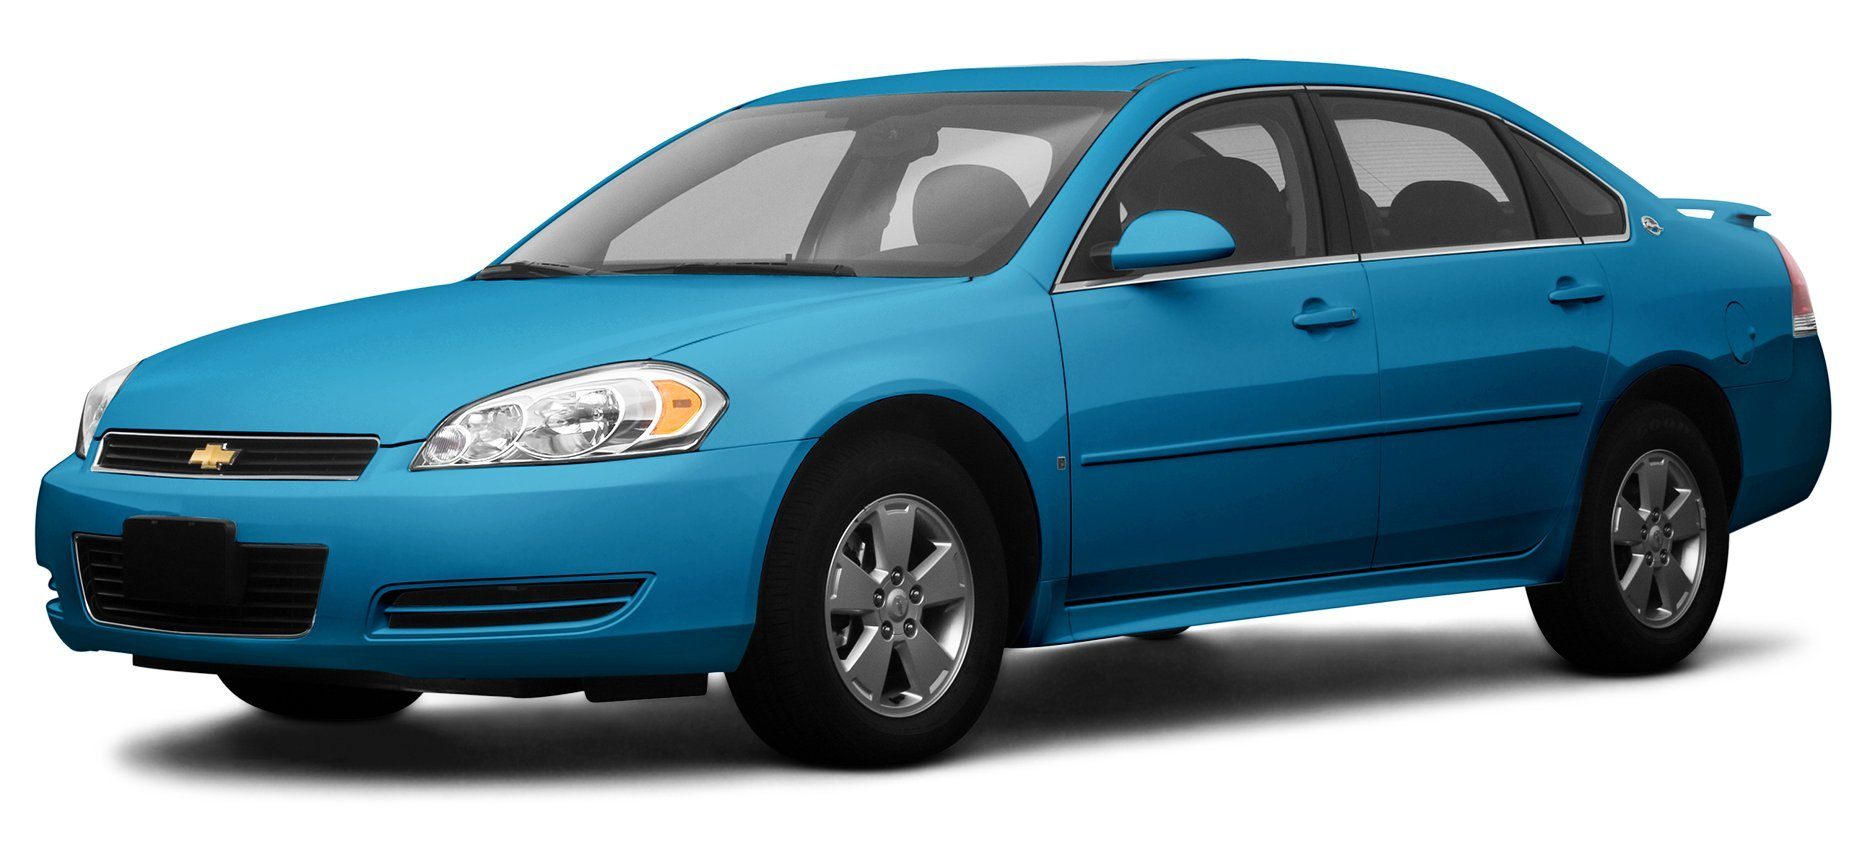 2009 Chevrolet Impala Reviews Images And Specs Vehicles 1970 For Sale Craigslist 35l Lt 4 Door Sedan